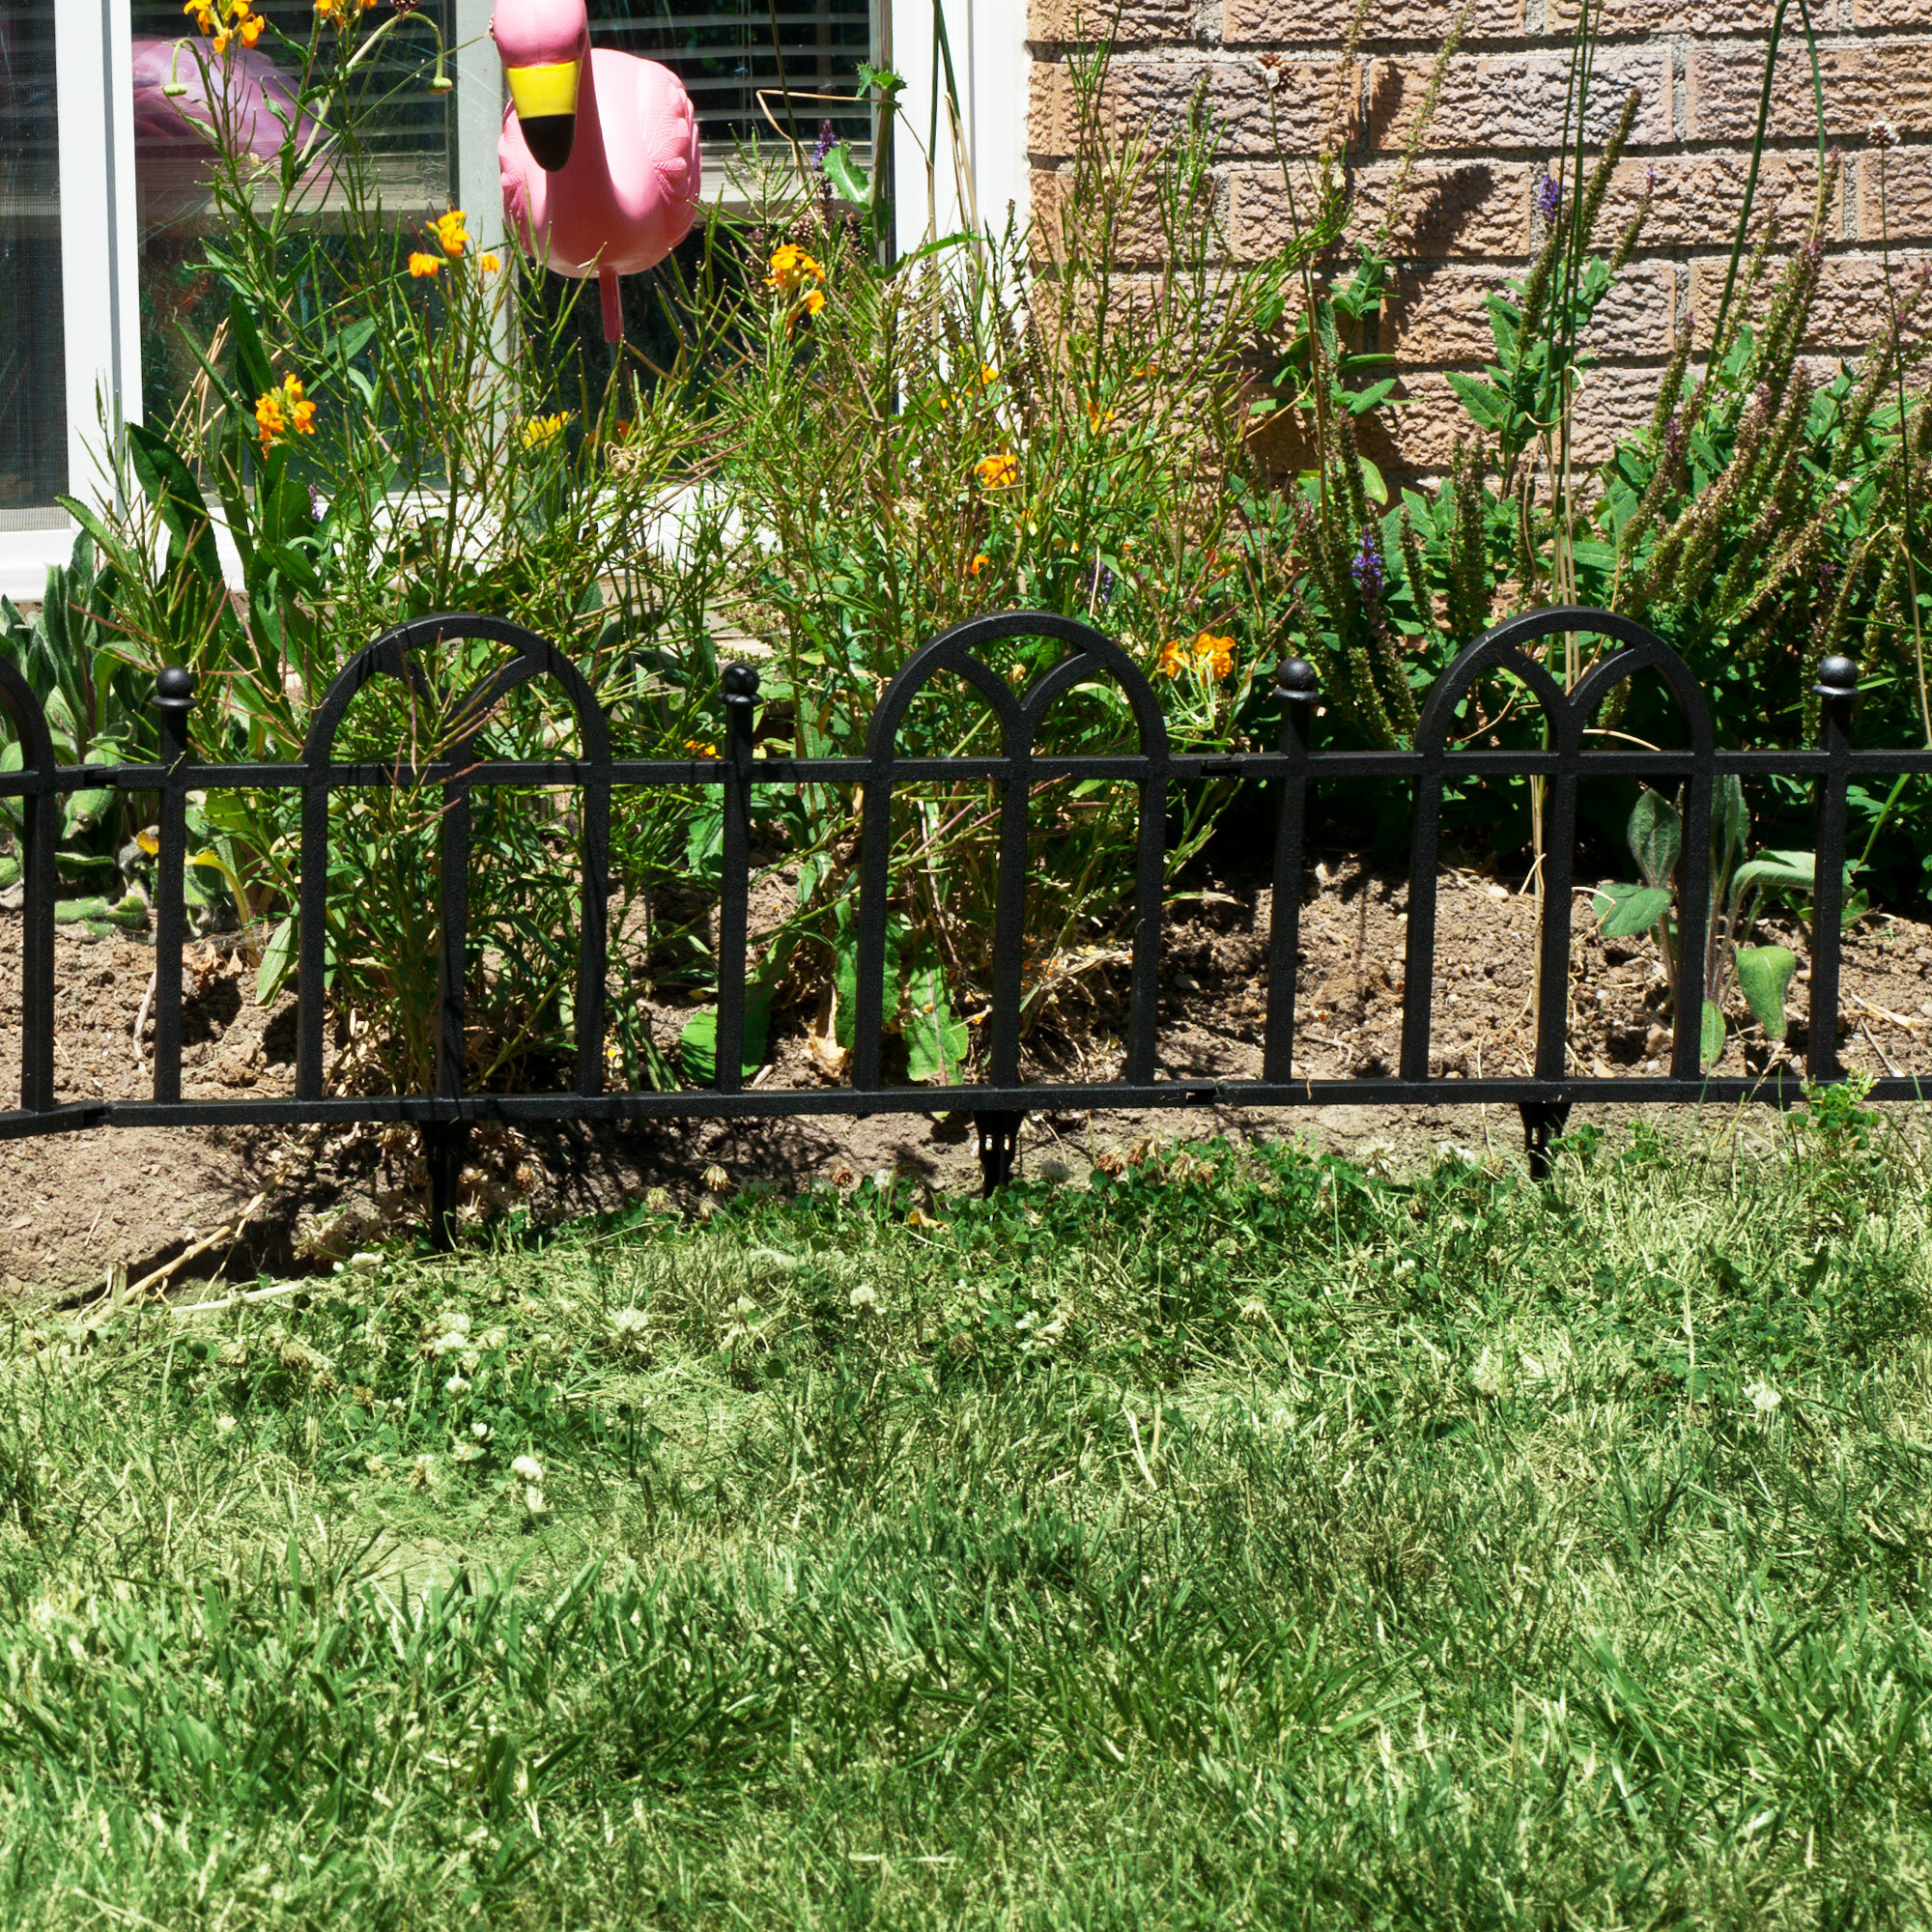 Ordinaire Pure Garden 16 In. H X 2 Ft. W Victorian Garden Edging U0026 Reviews | Wayfair